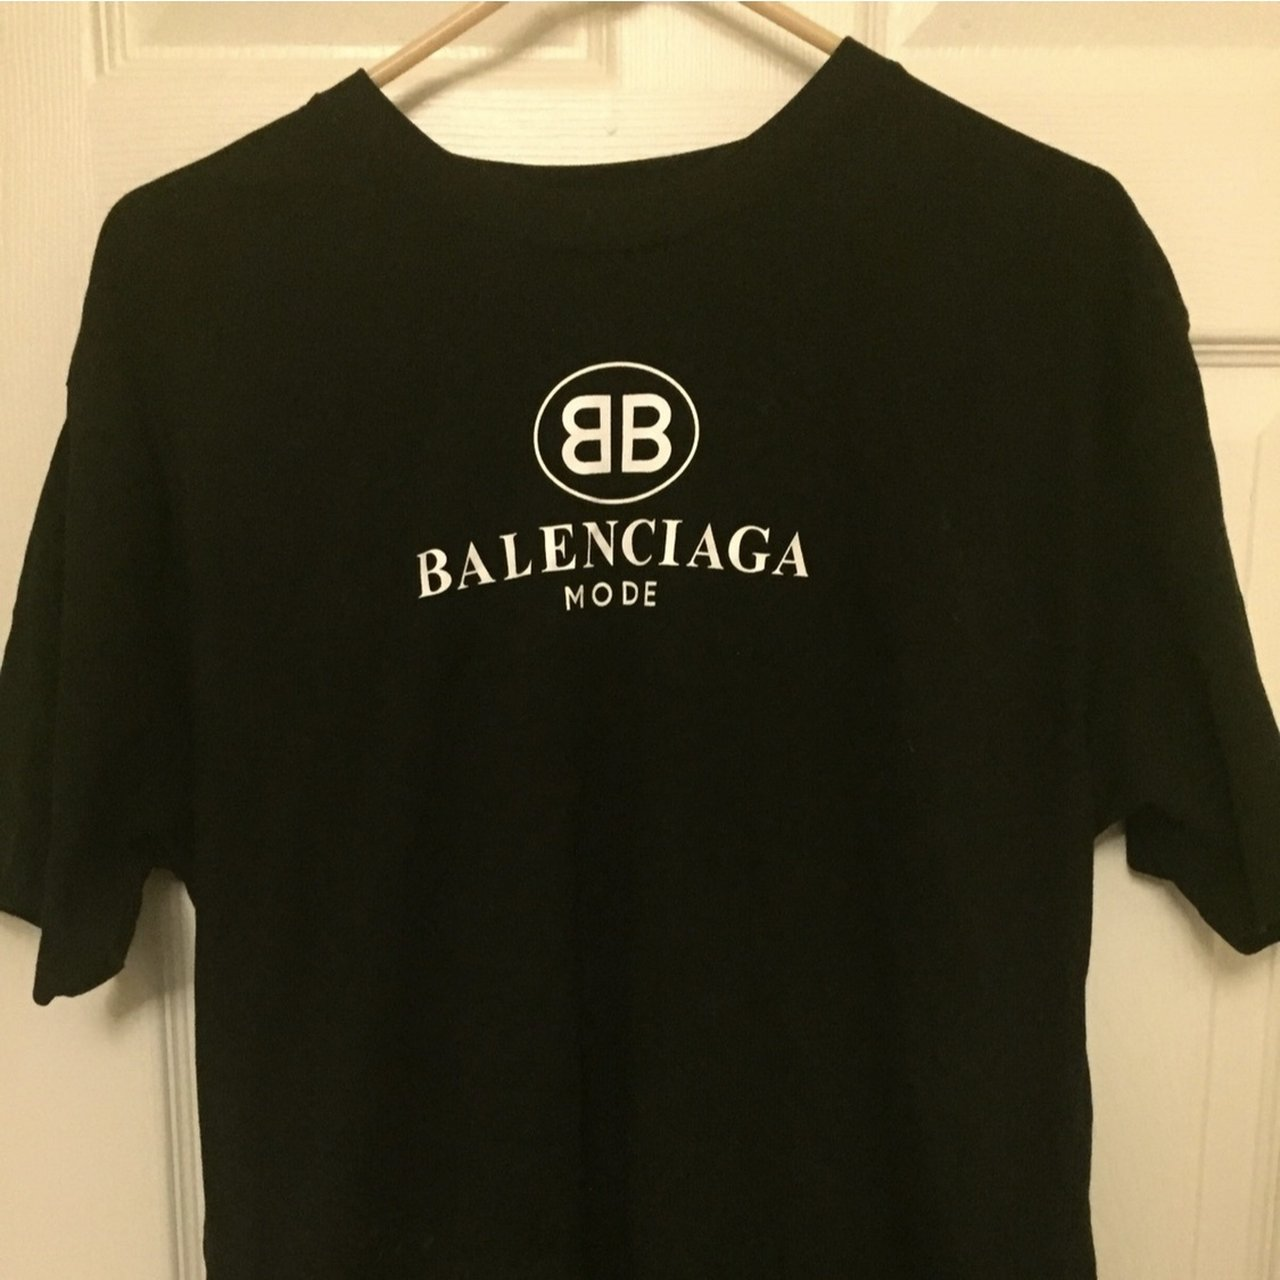 cb152c38f balenciaga mode black shirt